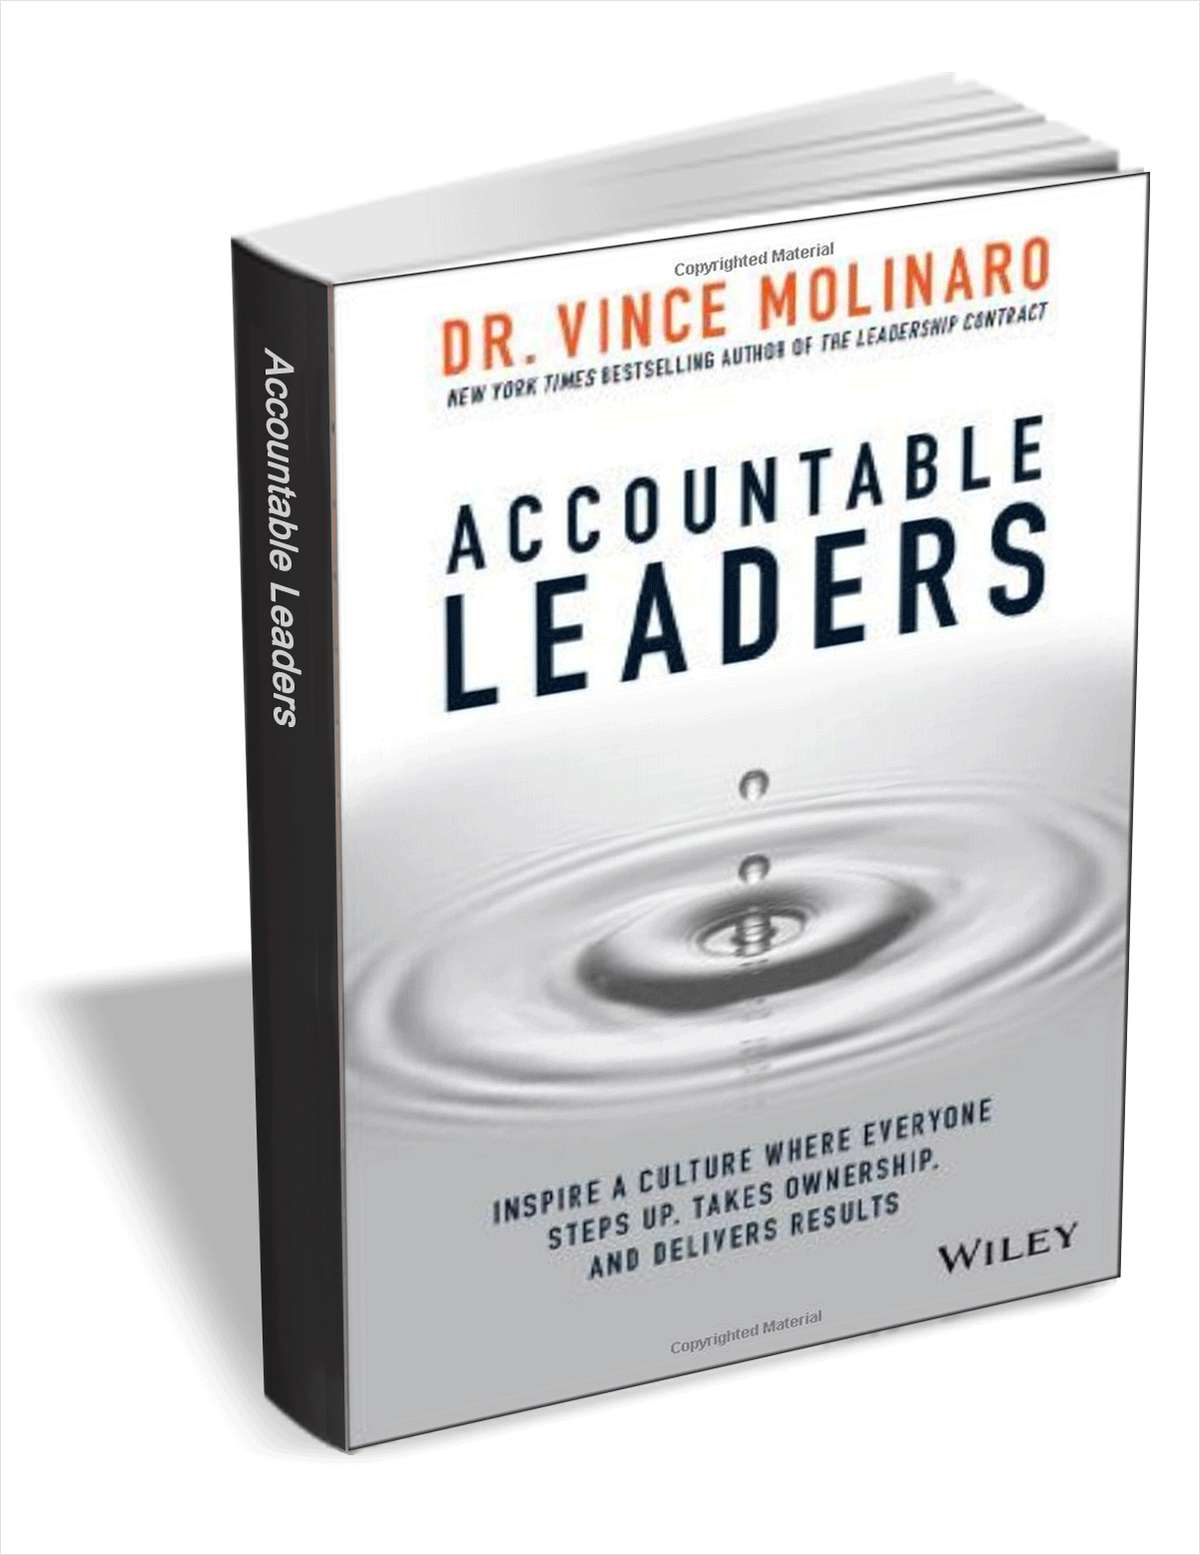 Accountable Leaders: Inspire a Culture Where Everyone Steps Up, Takes Ownership, and Delivers Results ($15.00 Value) FREE for a Limited Time Screenshot